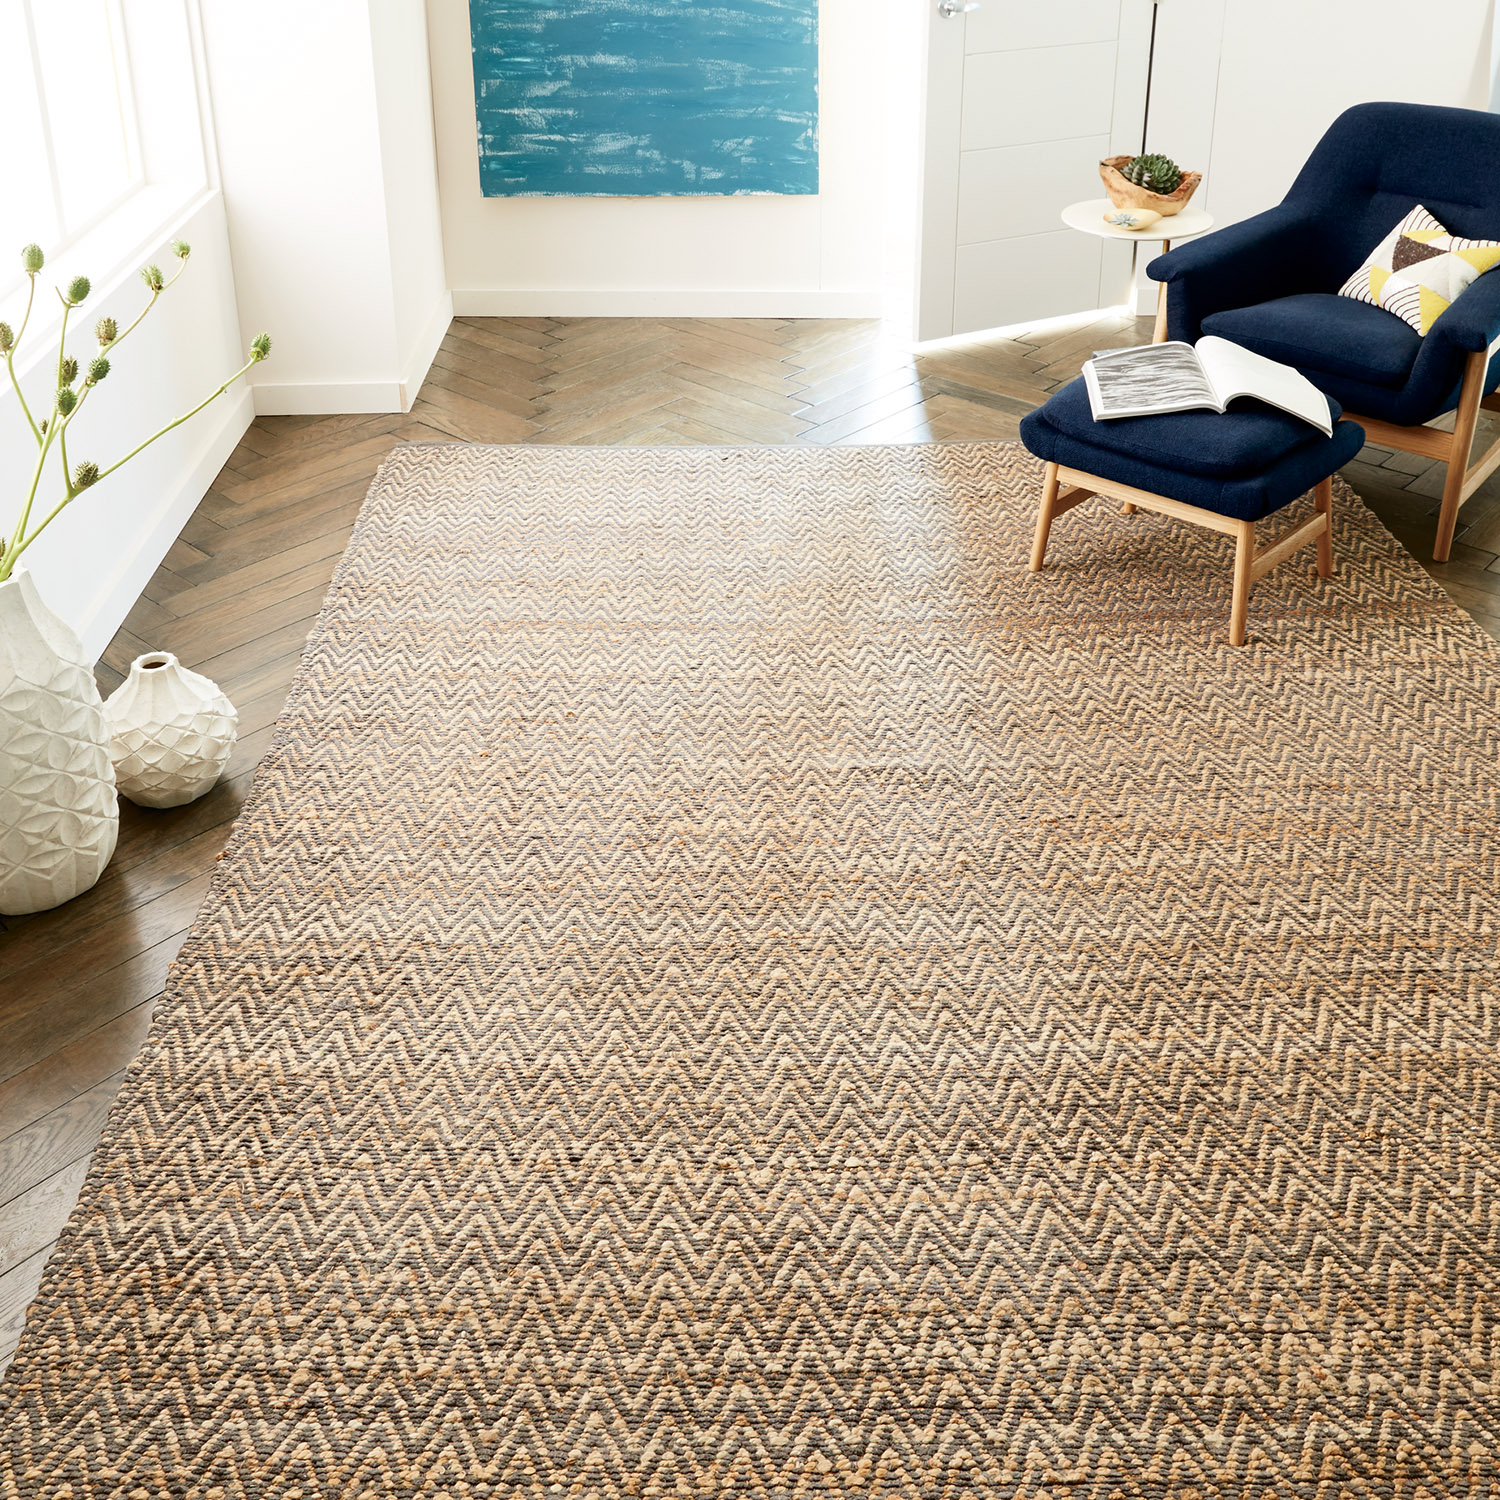 E Because Of Their Durability Affordable Price And Neutral Color Palette  Natural Rugs Are Especially Good For Hightraffic Areas